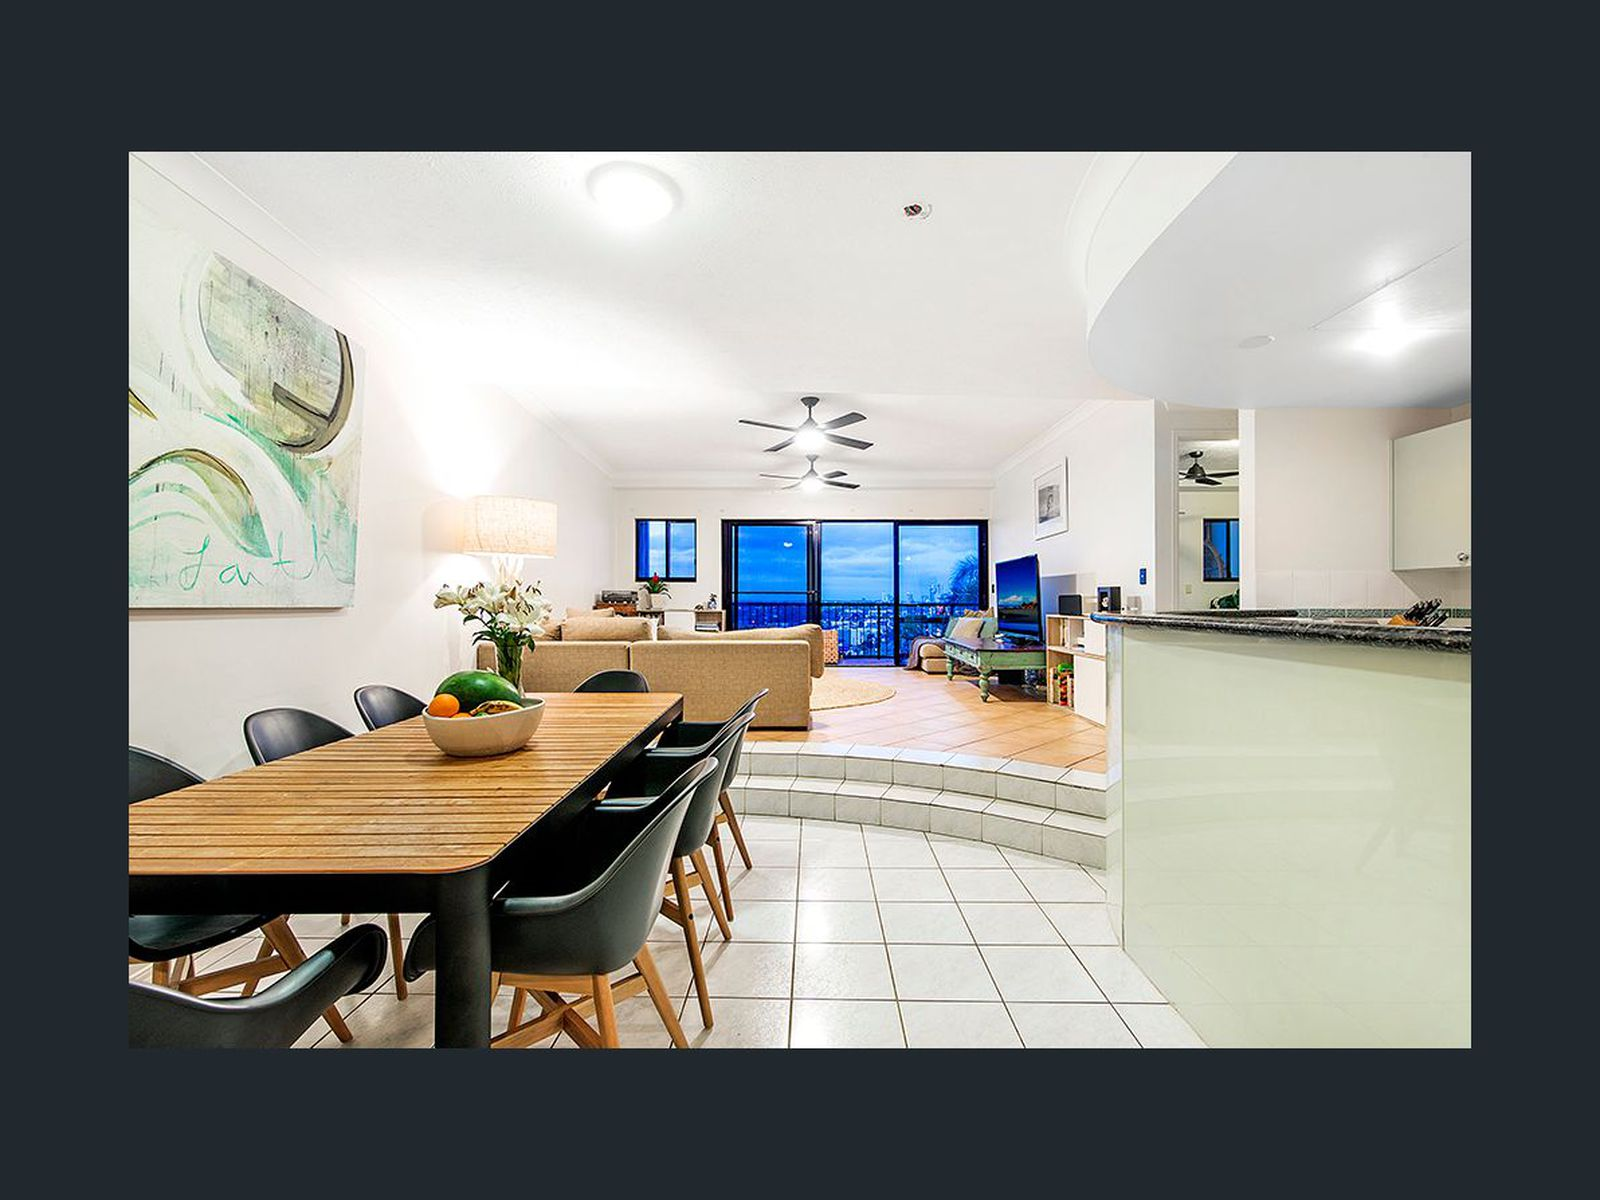 A18 / 1  Great Hall Drive, Miami